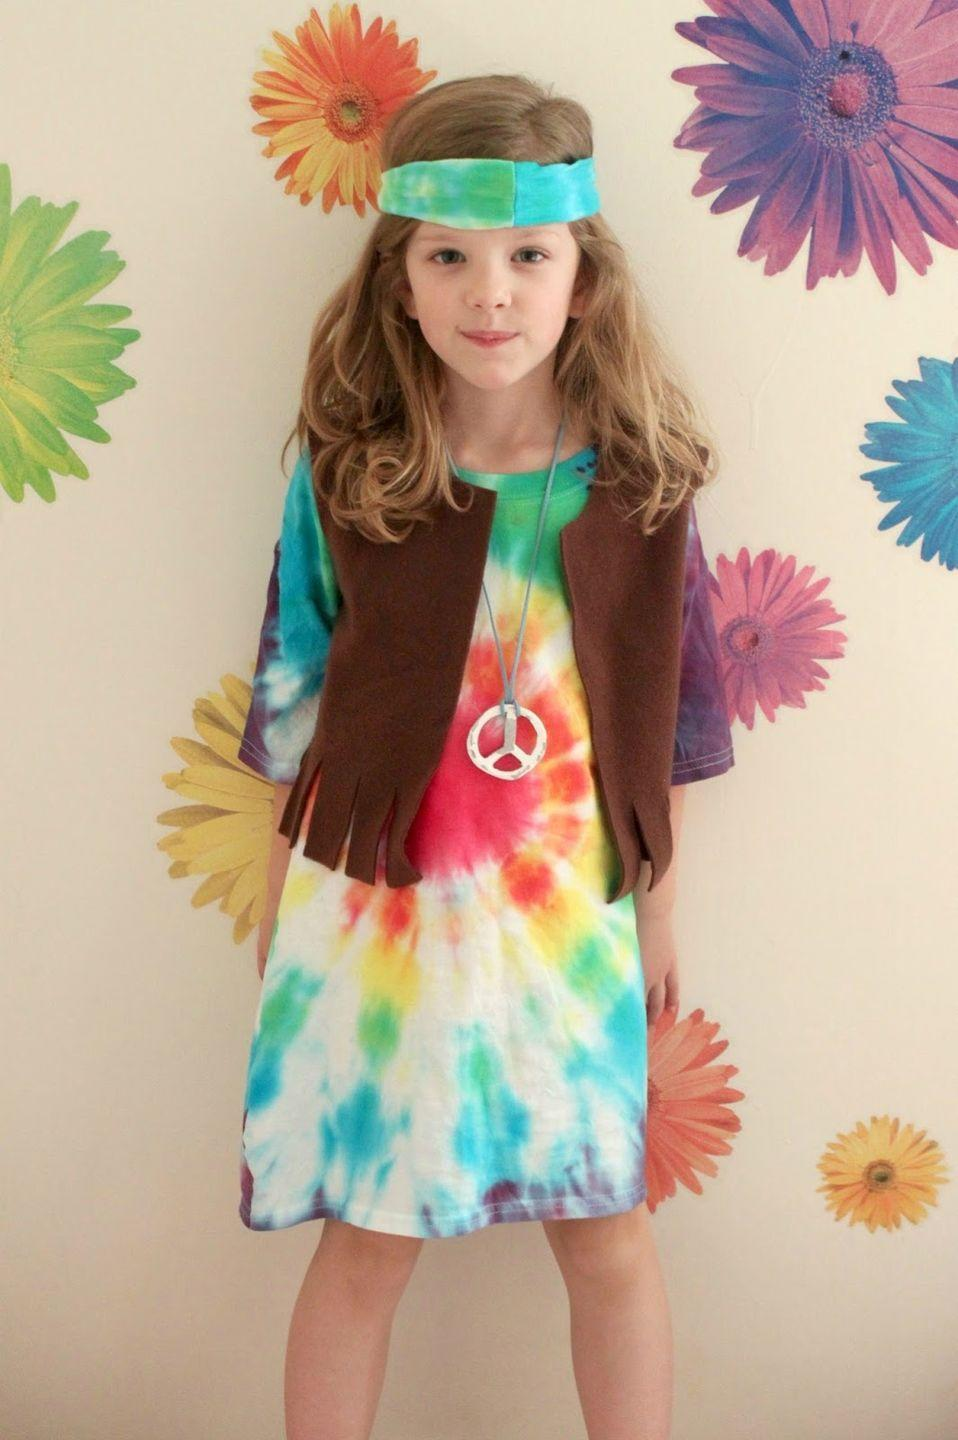 "<p>This adorable dress was made using an extra large T-shirt and a tie-dye kit. The vest is made from brown fleece material, but you could just as easily find a ready-made option at a thrift store. </p><p><strong>Get the tutorial at <a href=""http://www.eatsleepmake.com/2014/10/kids-hippie-costume-tutorial.html?crlt.pid=camp.rSAnQQ2dKlD0"" rel=""nofollow noopener"" target=""_blank"" data-ylk=""slk:Eat Sleep Make."" class=""link rapid-noclick-resp"">Eat Sleep Make.</a> </strong></p><p><strong><a class=""link rapid-noclick-resp"" href=""https://www.amazon.com/Amscan-840572-Peace-Sign-Necklace/dp/B00J0I14YO/ref=sr_1_3?tag=syn-yahoo-20&ascsubtag=%5Bartid%7C10050.g.28305469%5Bsrc%7Cyahoo-us"" rel=""nofollow noopener"" target=""_blank"" data-ylk=""slk:SHOP PEACE SIGN NECKLACES"">SHOP PEACE SIGN NECKLACES</a></strong></p>"